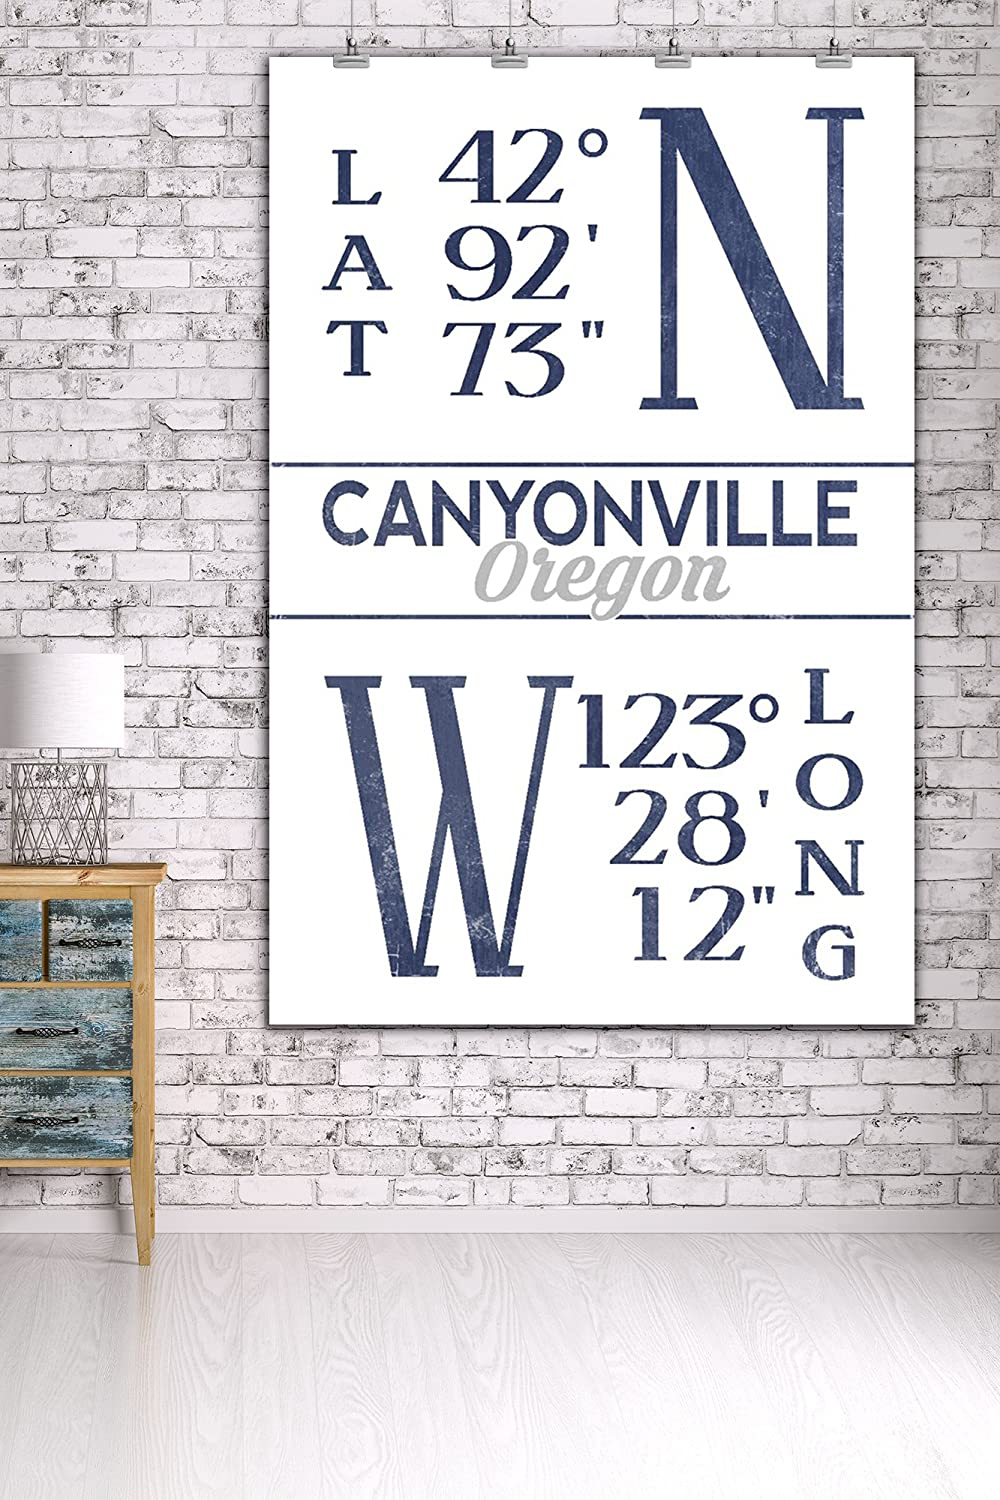 36x54 Giclee Gallery Print, Wall Decor Travel Poster Blue Latitude and Longitude Canyonville Oregon